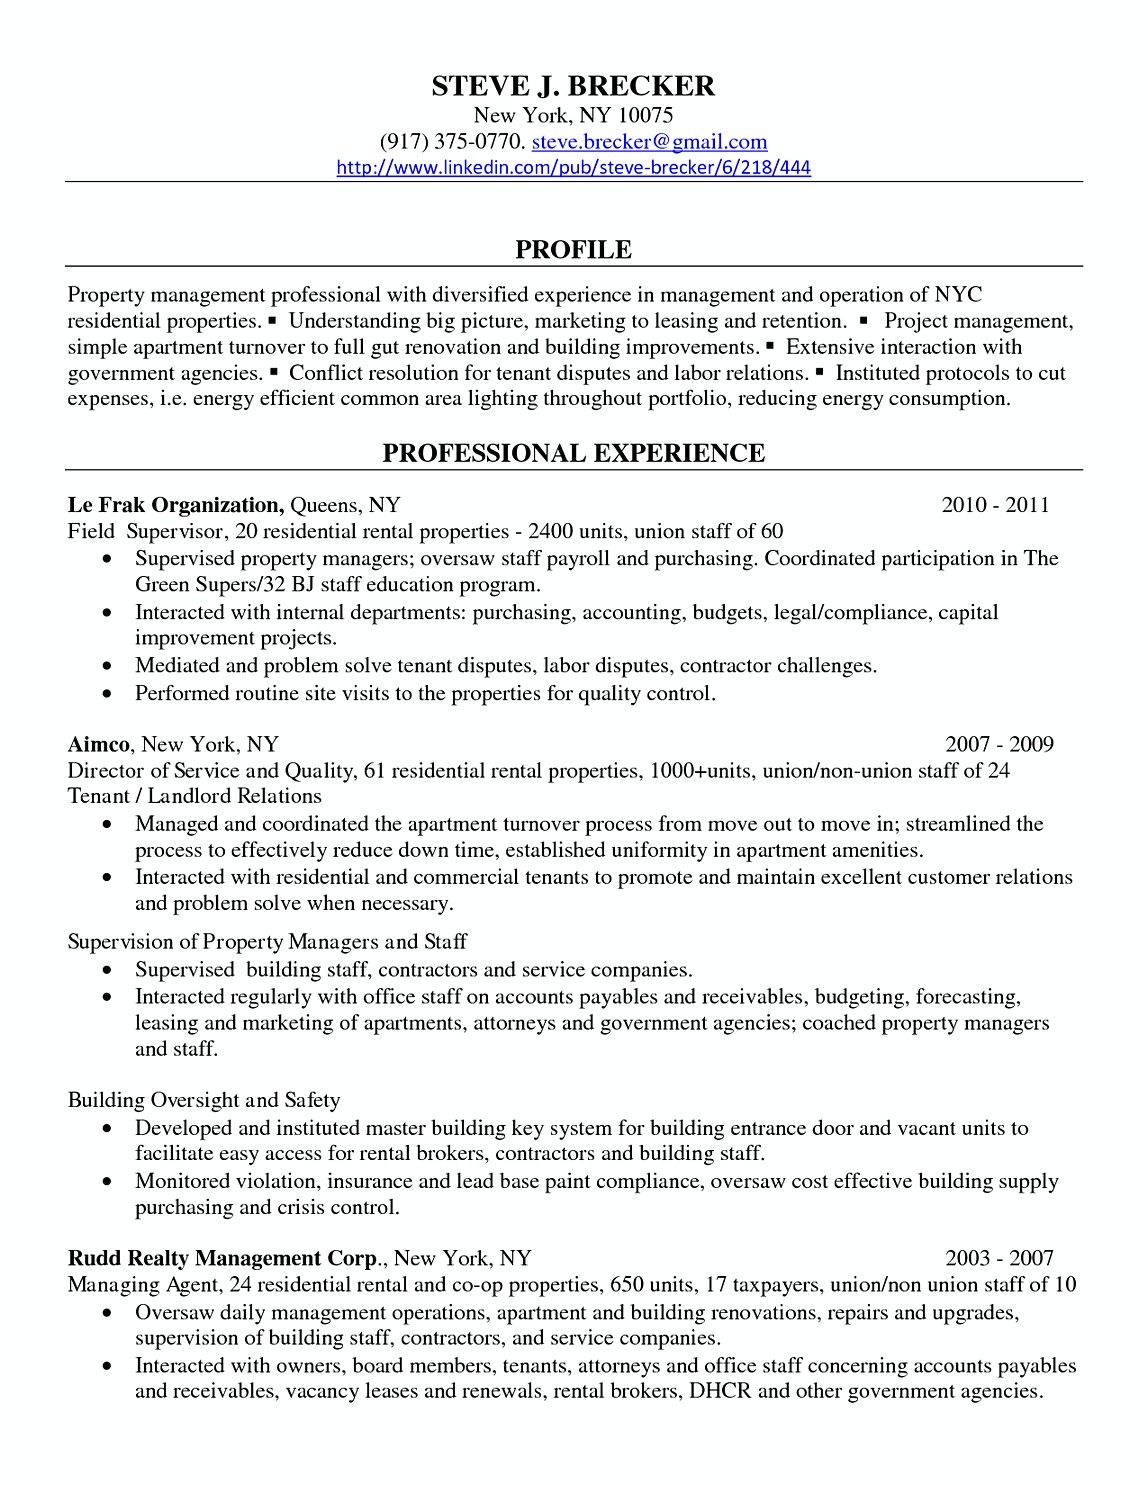 Apartment Manager Resume Amazing Property Manager Professional Resume Samples  Commercial Property .